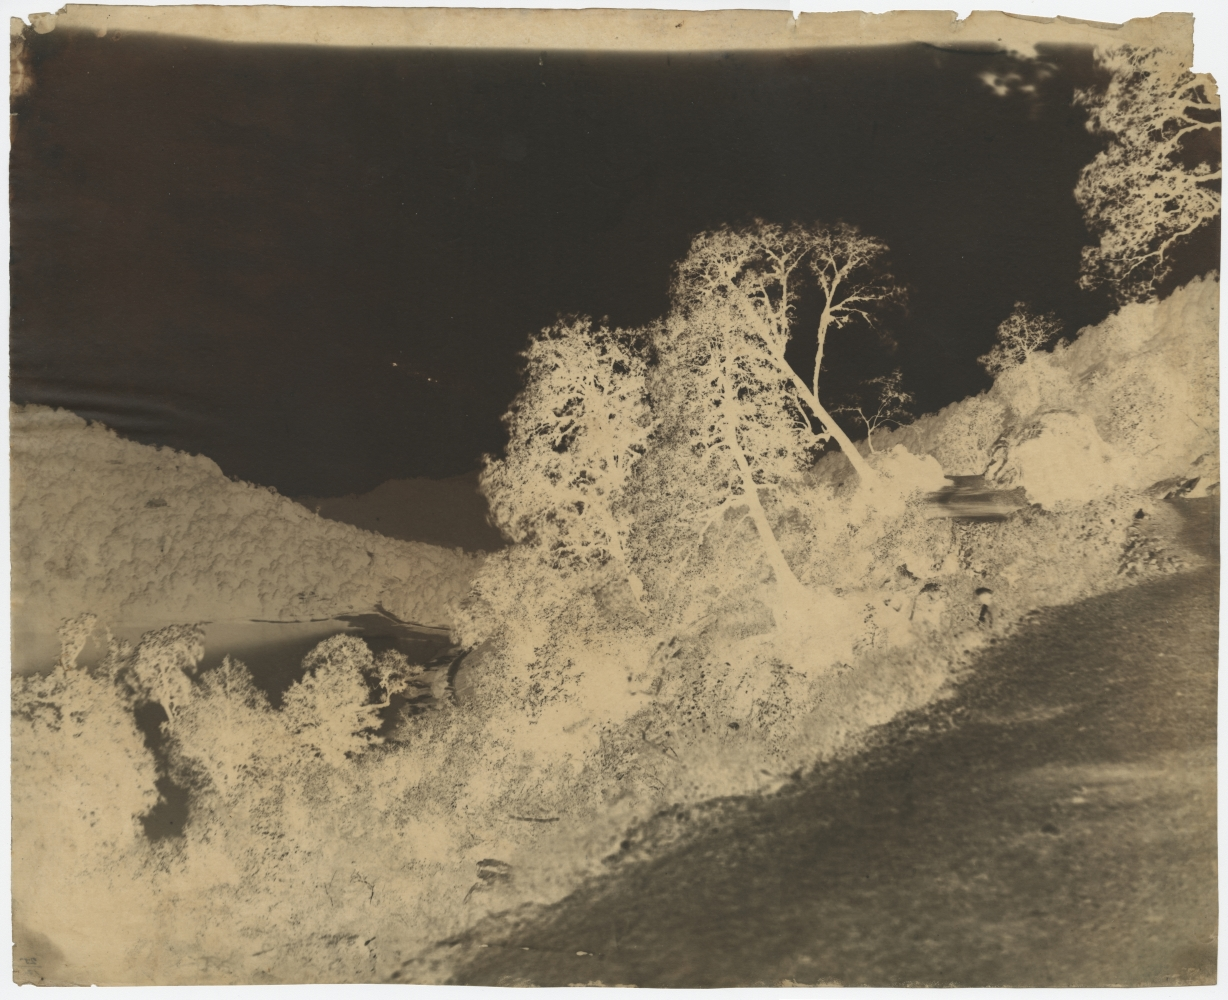 """Dr. John MURRAY (Scottish, active in India, 1809-1898) View of lake, India, circa 1858-1862 Calotype negative, waxed, with selectively applied pigment 38.2 x 47.2 cm Inscribed """"25/12"""" in ink on verso"""